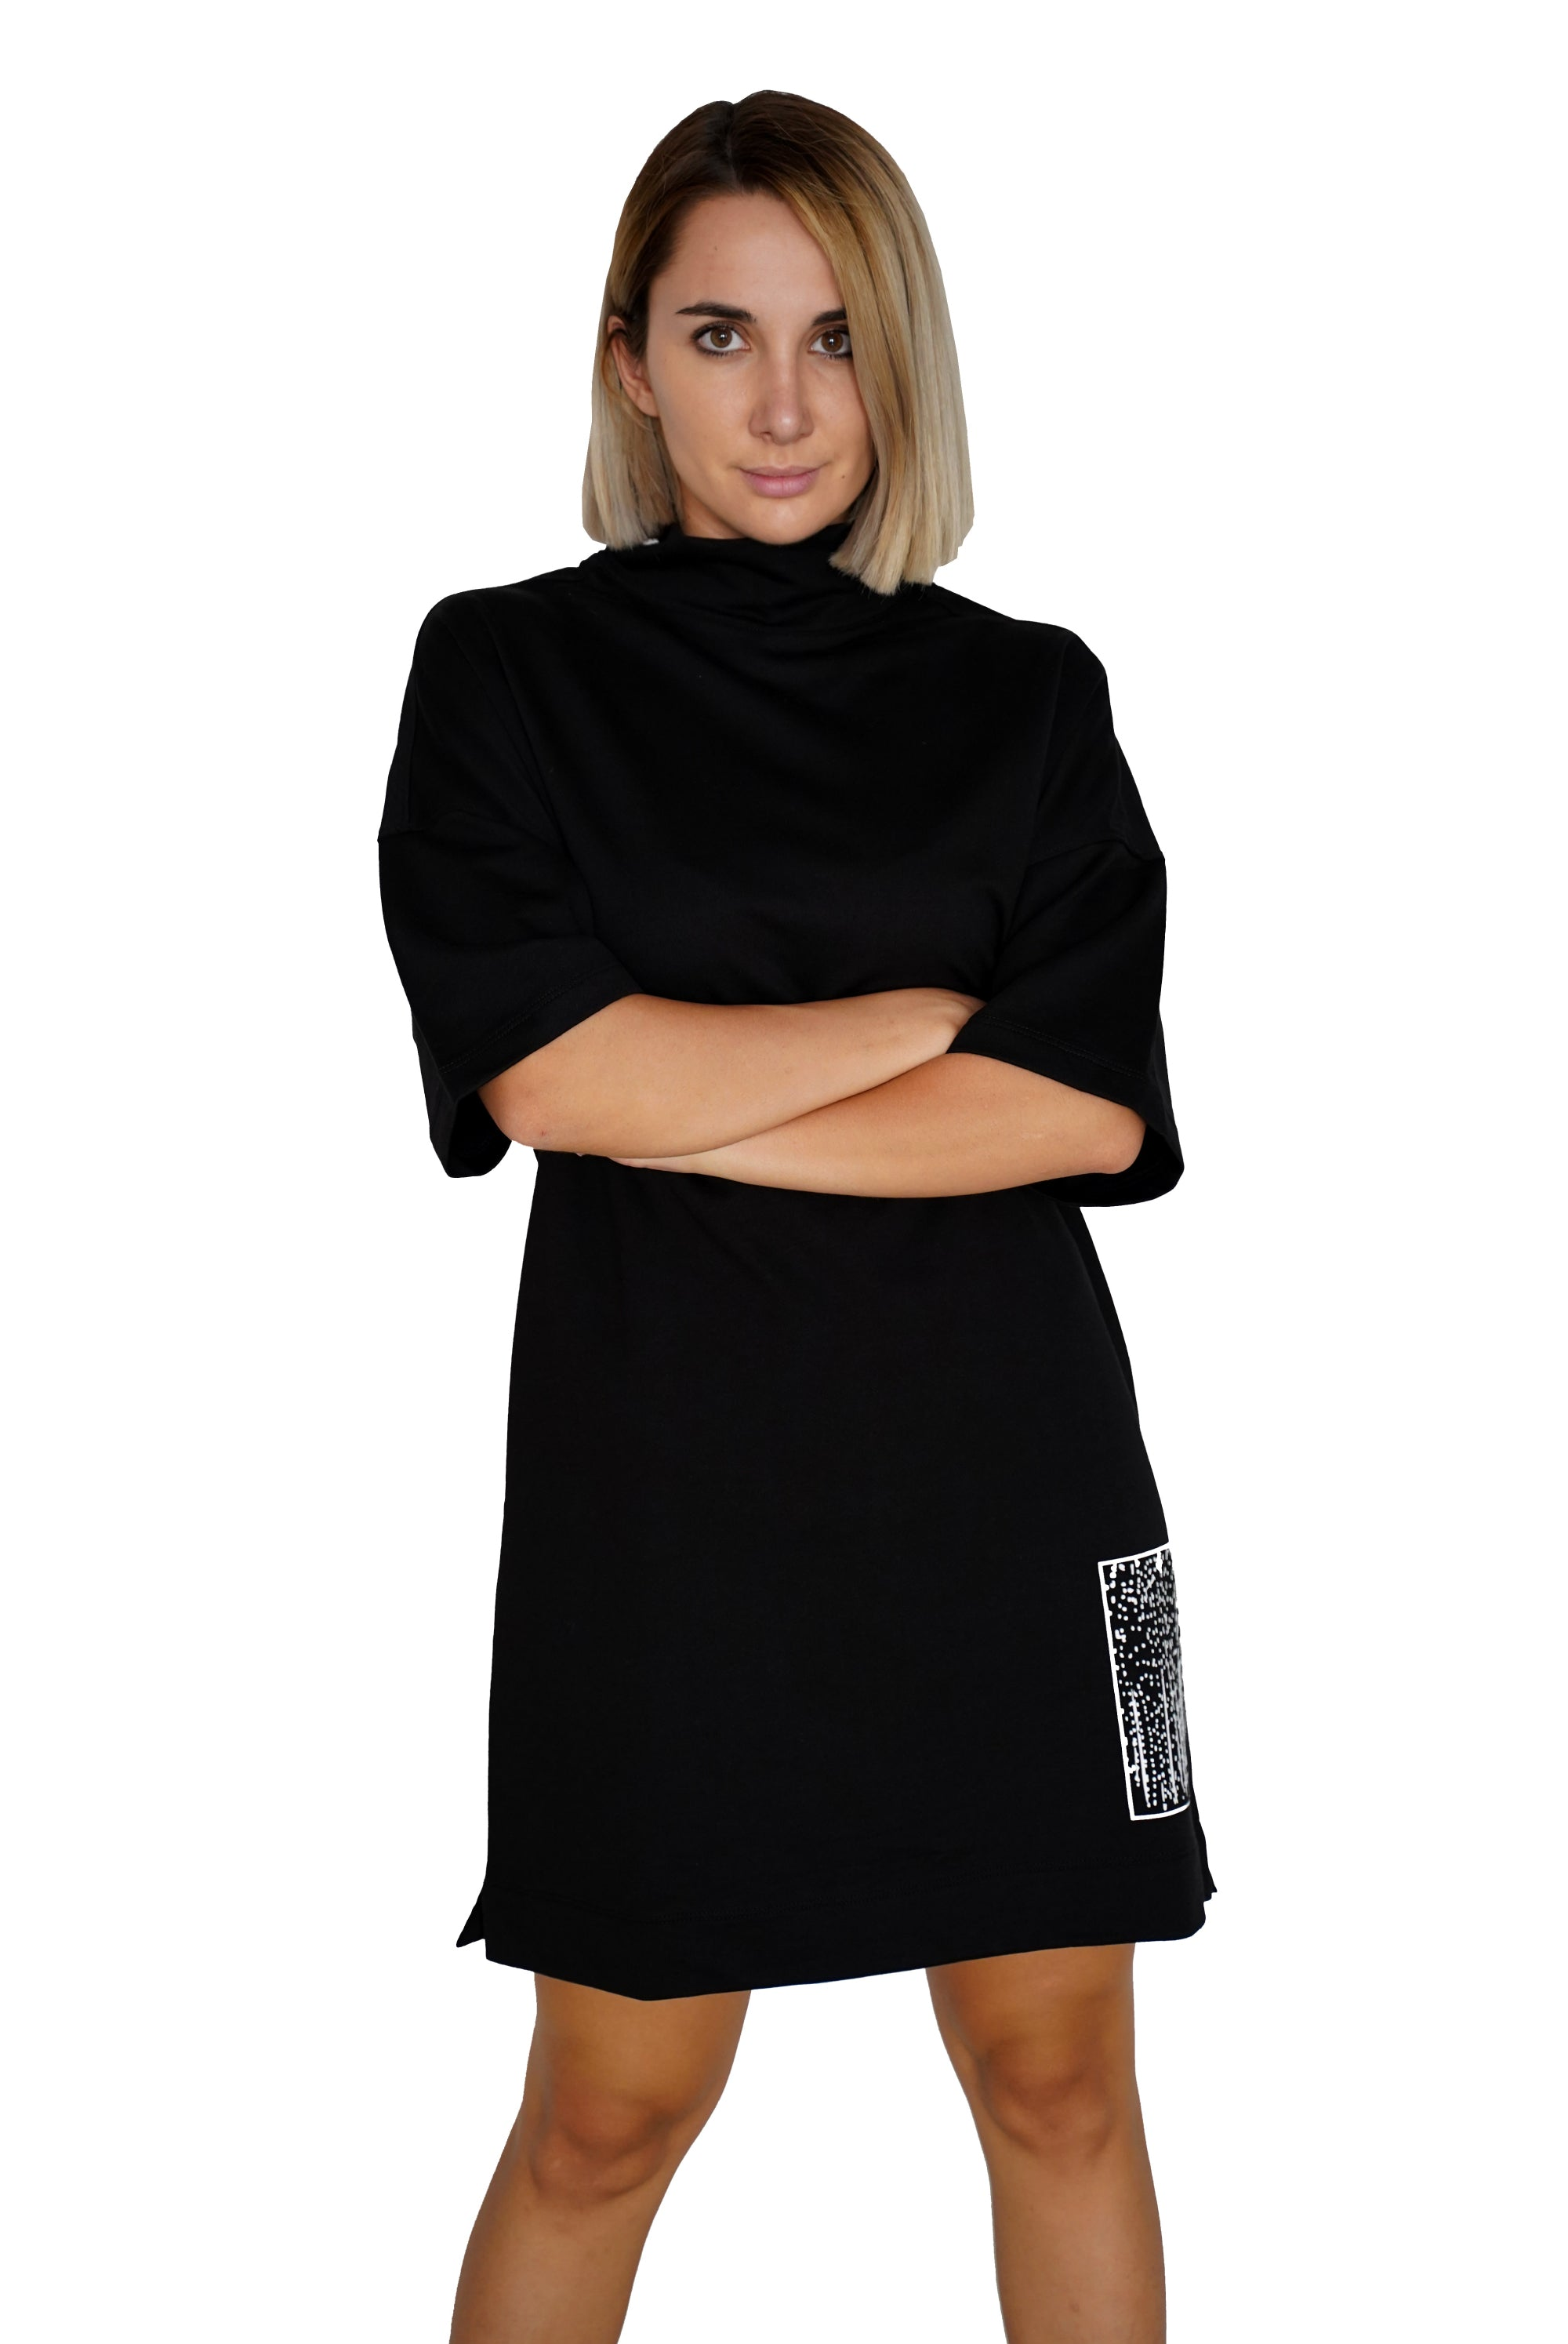 Turtleneck Black Dress - C191015